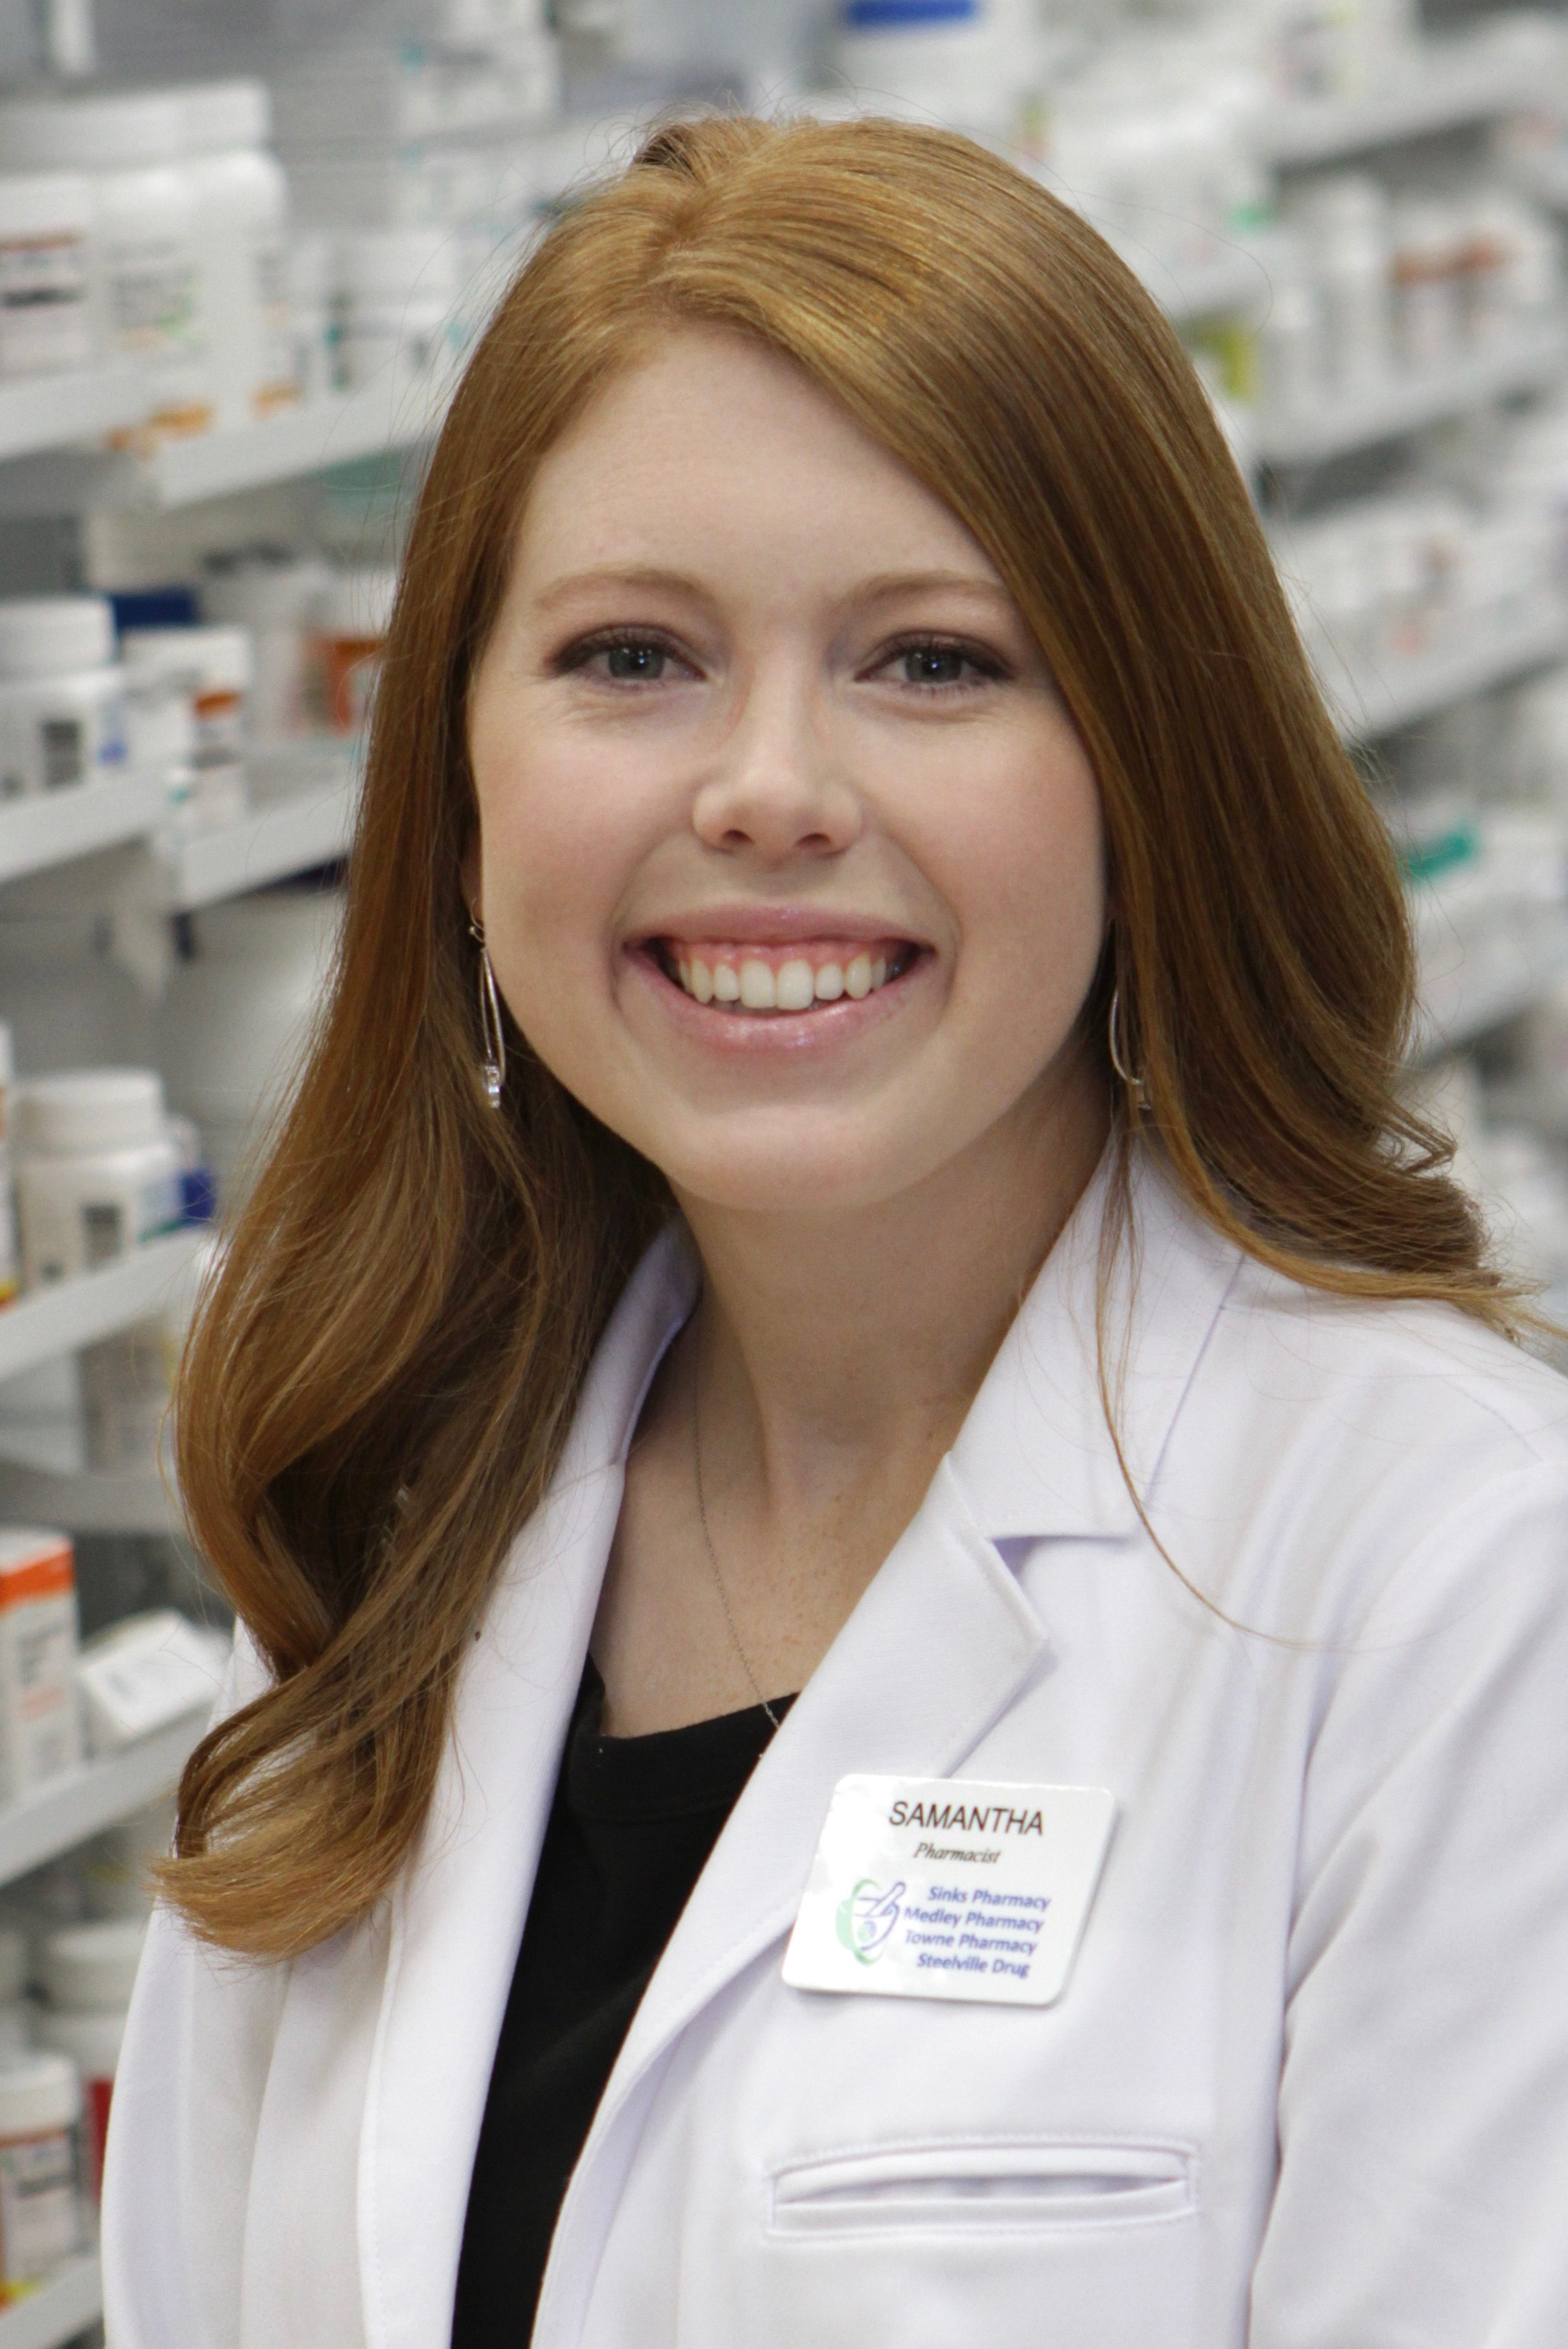 Samantha Mitchell, PharmD